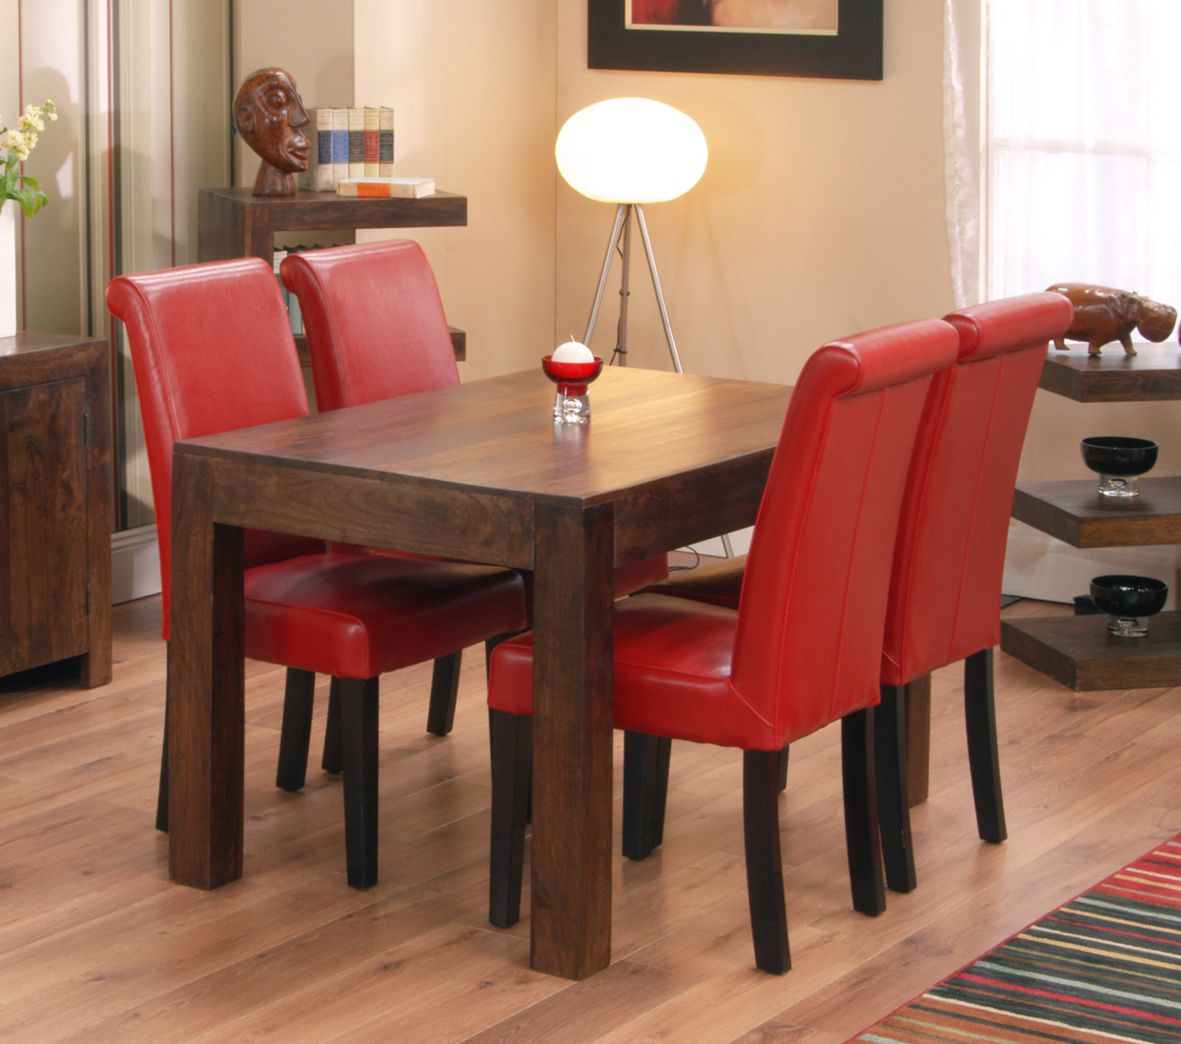 Image of: red upholstered dining chair